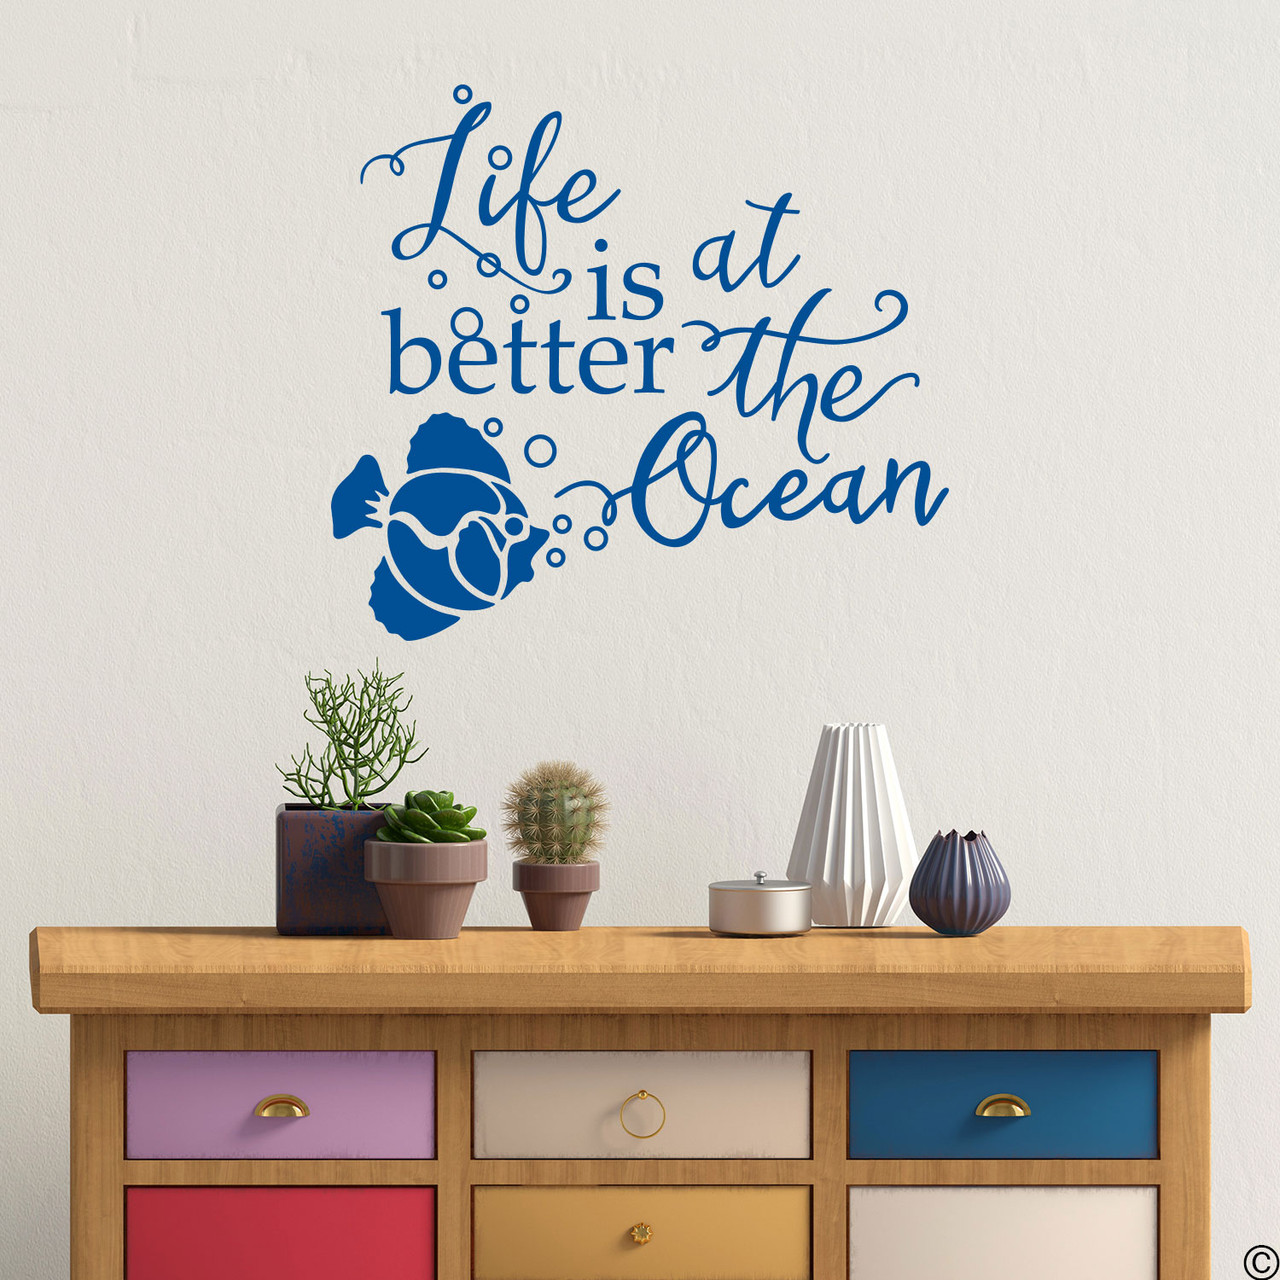 Fish Wall Decal With Better At The Ocean Quote